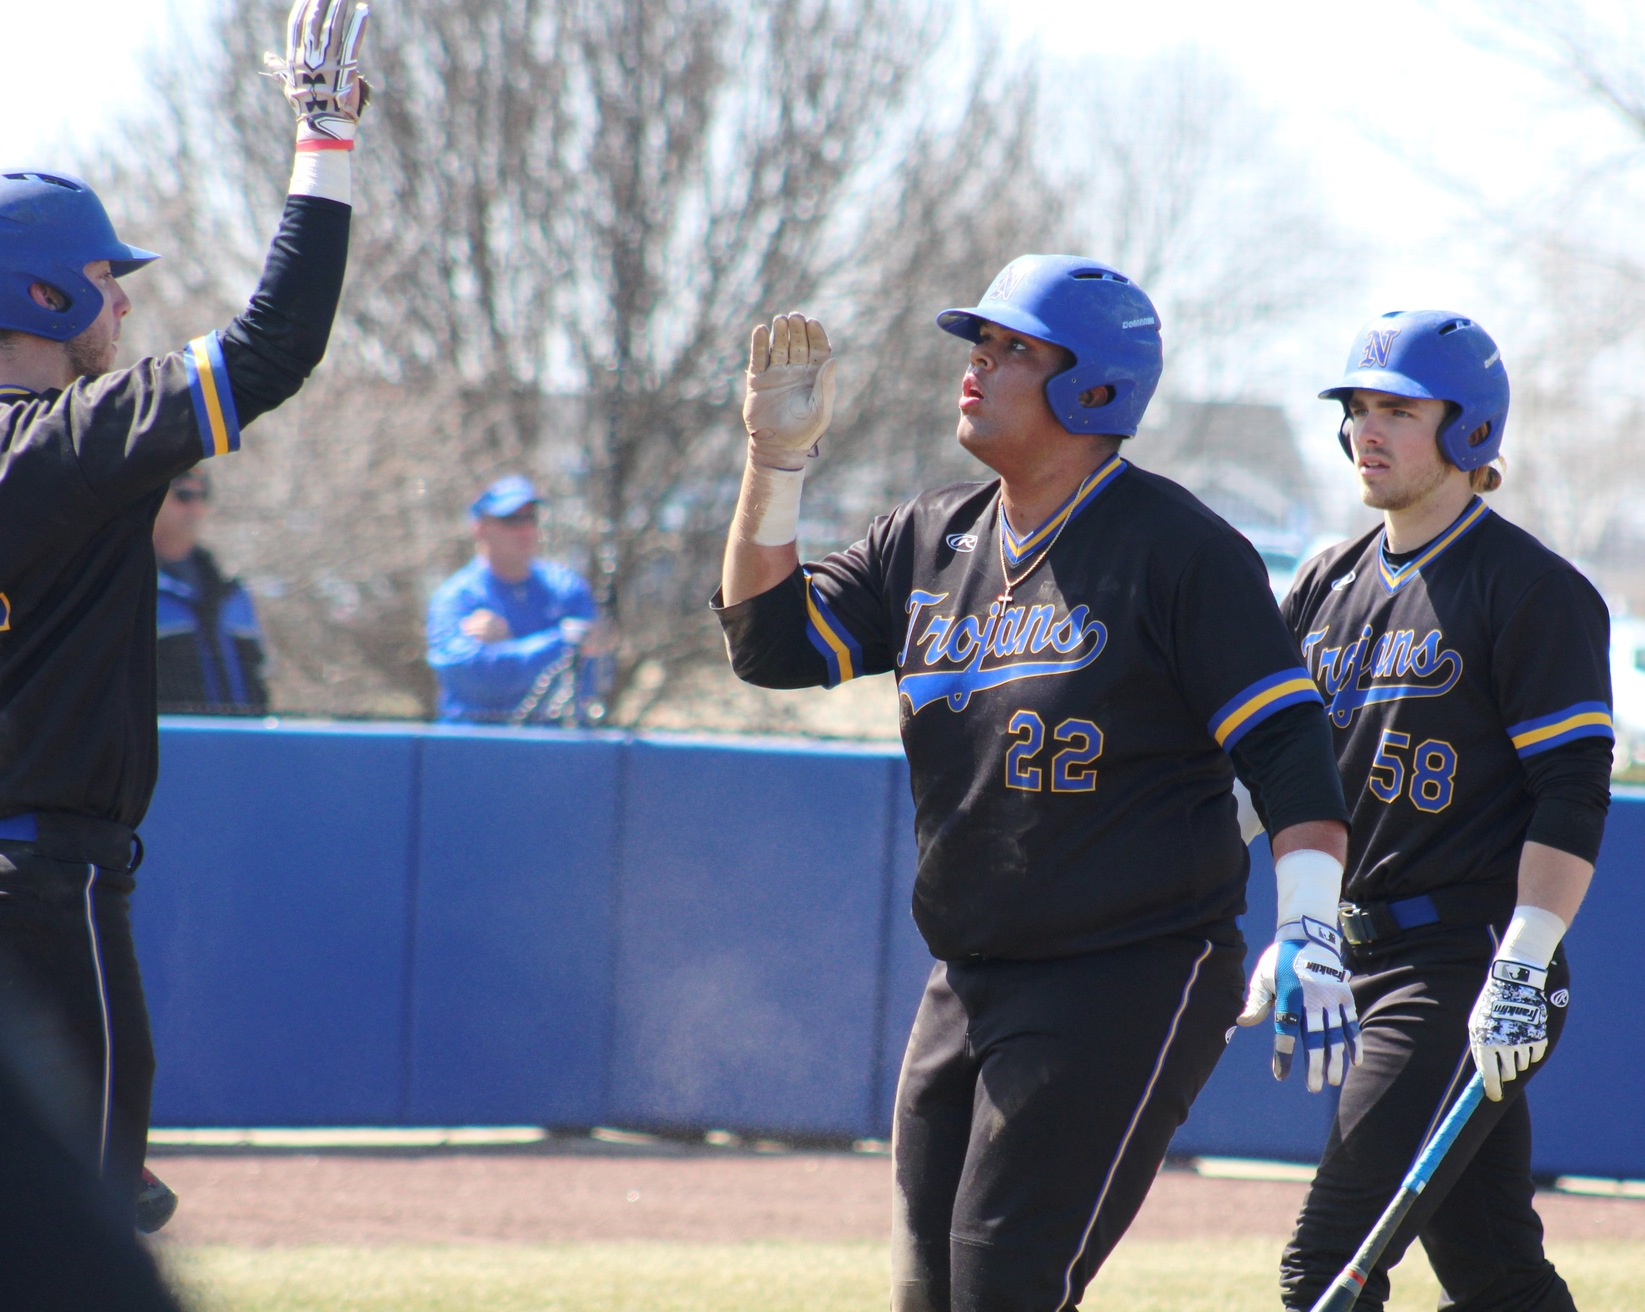 NIACC's Kamrin Arons (22) gets a high five after scoring a run in series against Kirkwood this season.